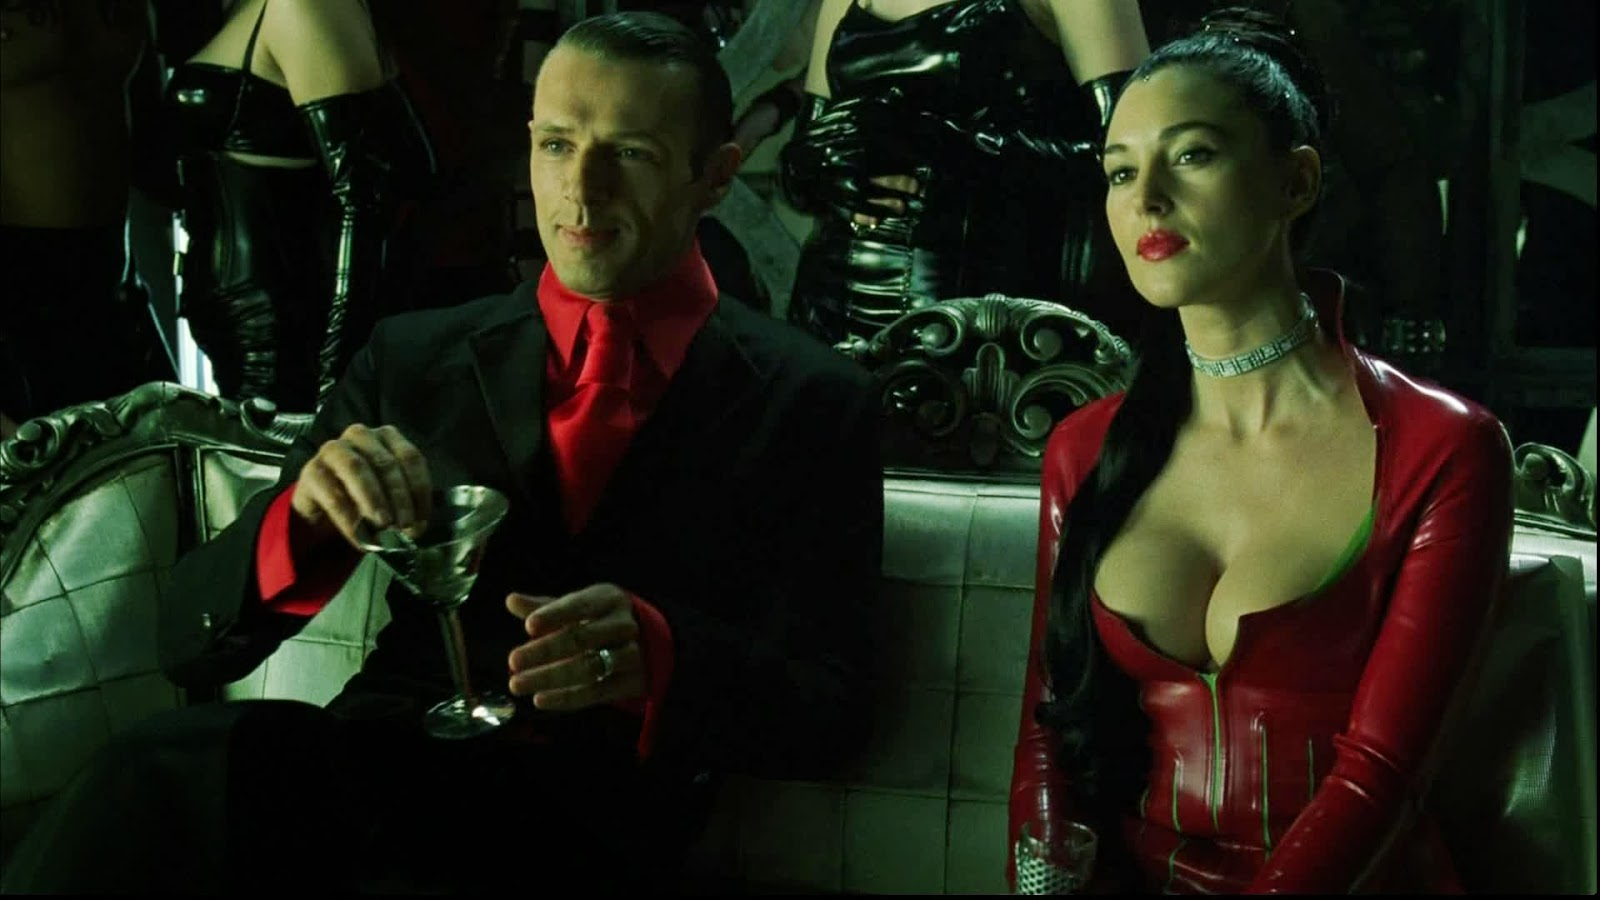 matrix-revolutions-hd-cap-monica-bellucci-235287_1920_1080.jpg